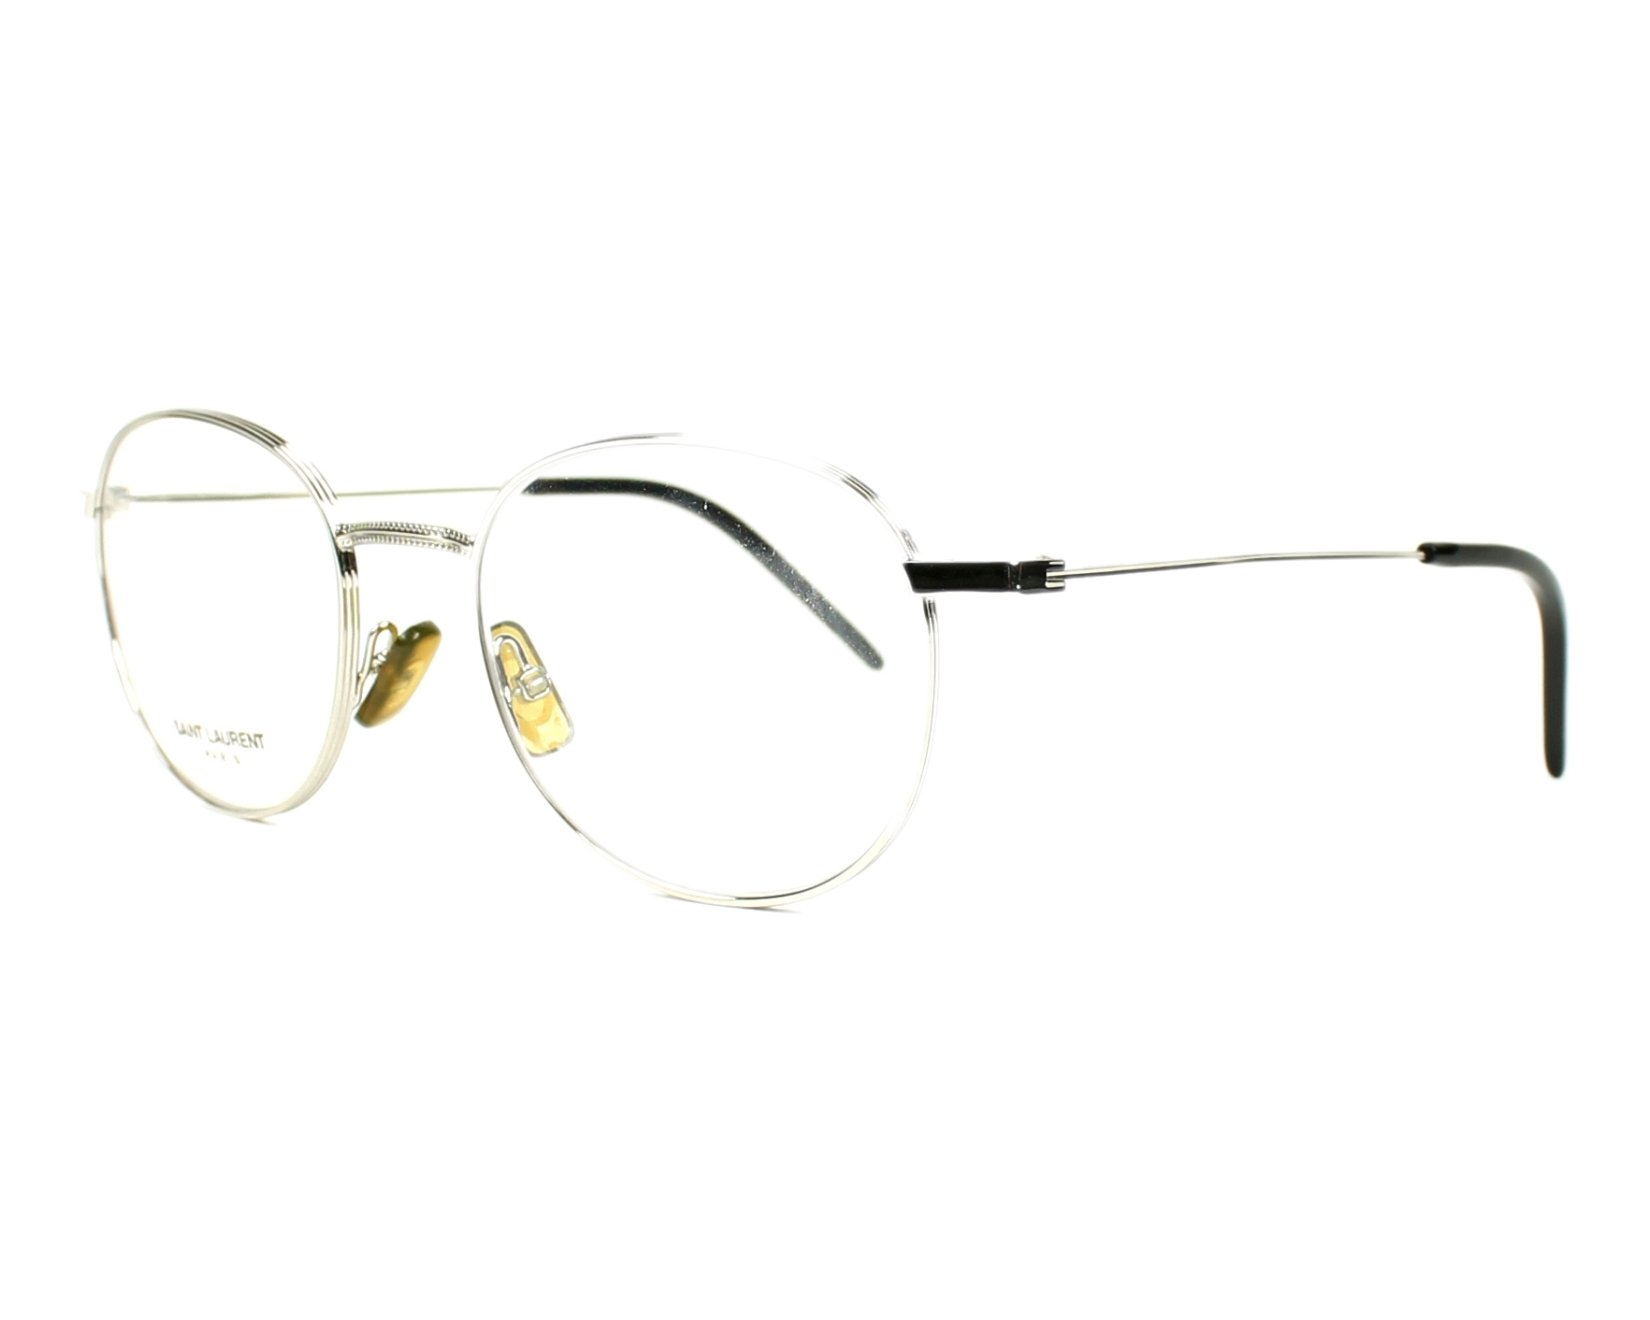 Yves saint laurent eyeglasses sl 71 010 silver visionet for Miroir yves saint laurent